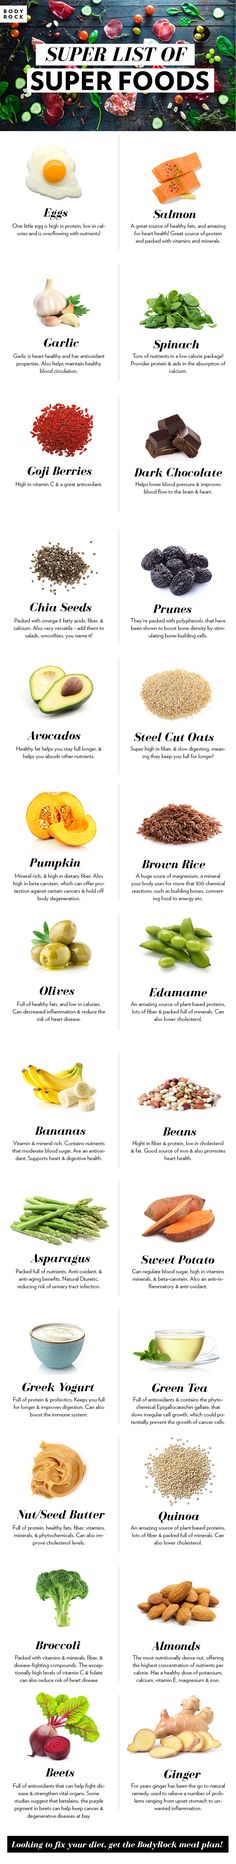 Here is the BodyRock super list of super food. Add these to your diet and start gaining the super hero like benefits of these nutrient packed foods! For more help on fixing your diet, get the bodyrock meal plan!